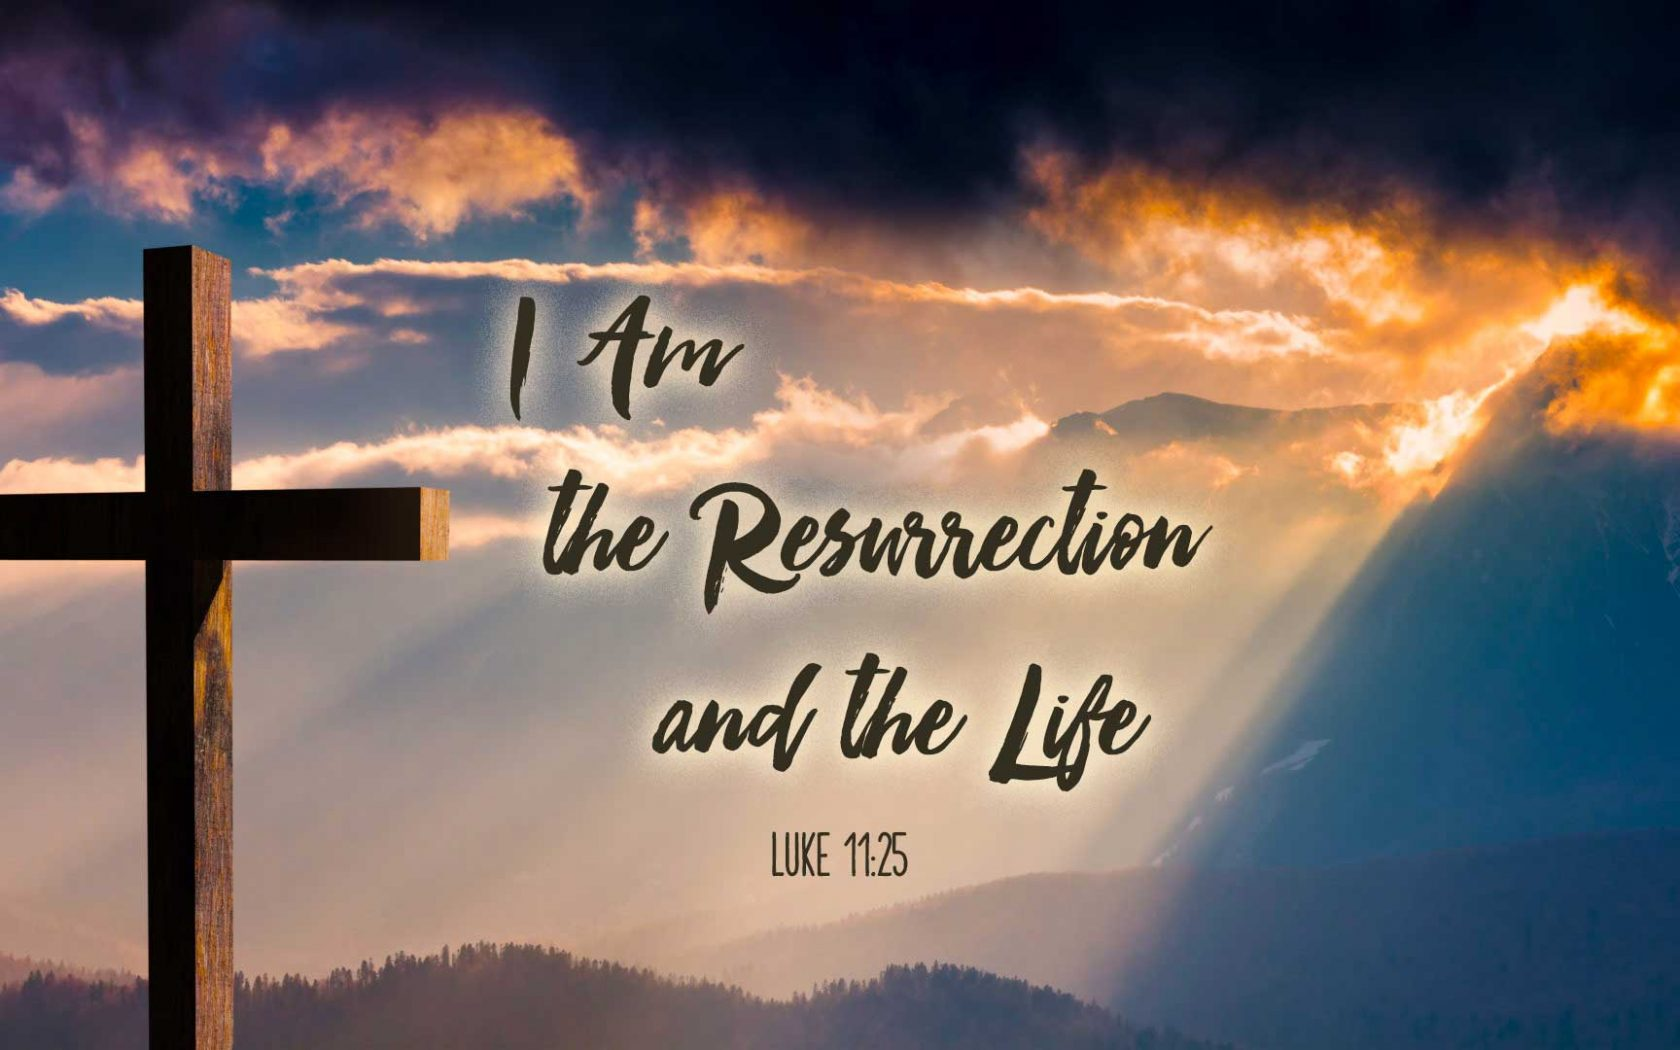 I Am the Resurrection and the Life - Grace Church of Tallahassee